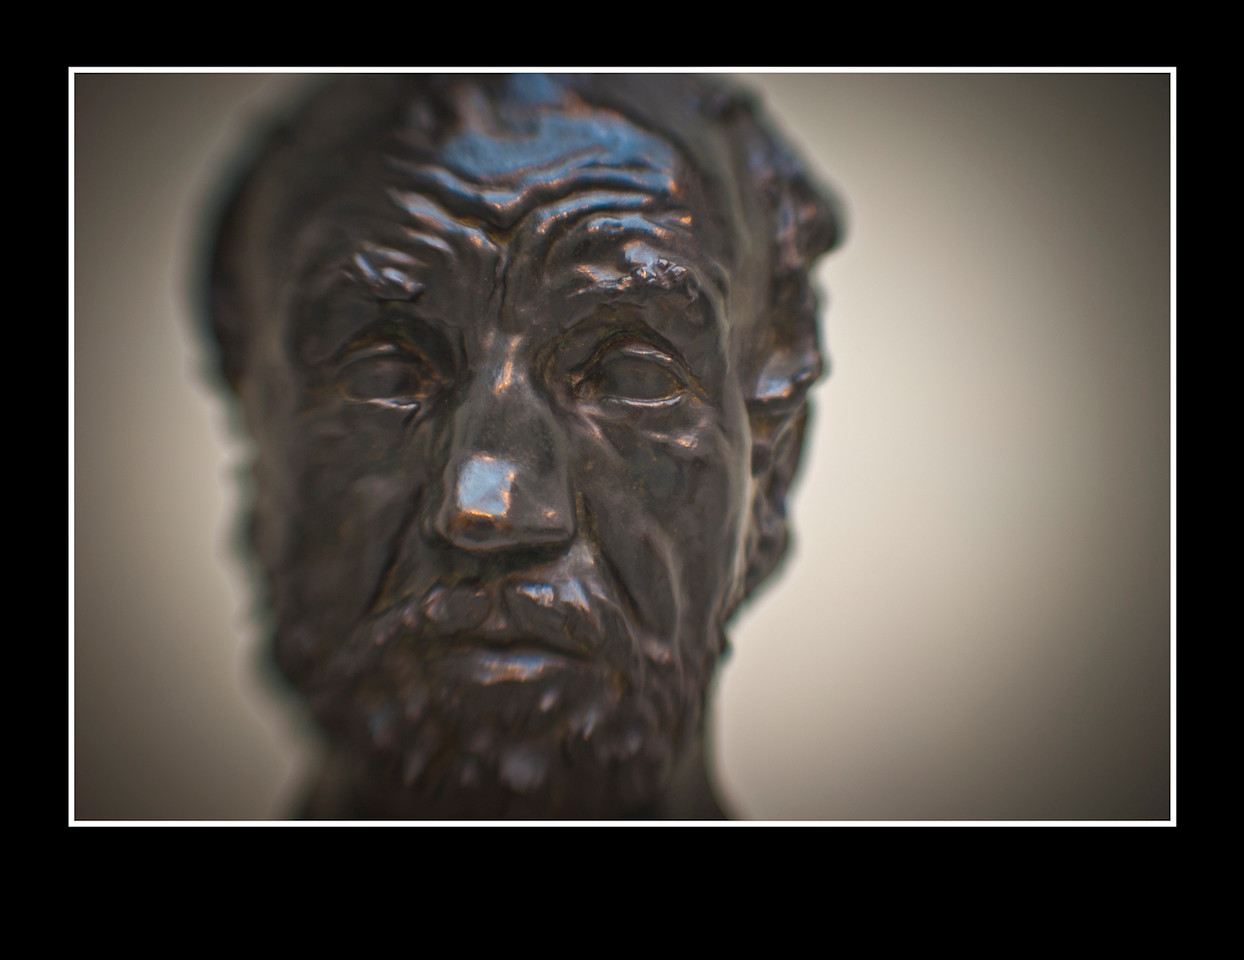 Rodin by Camille Claudel